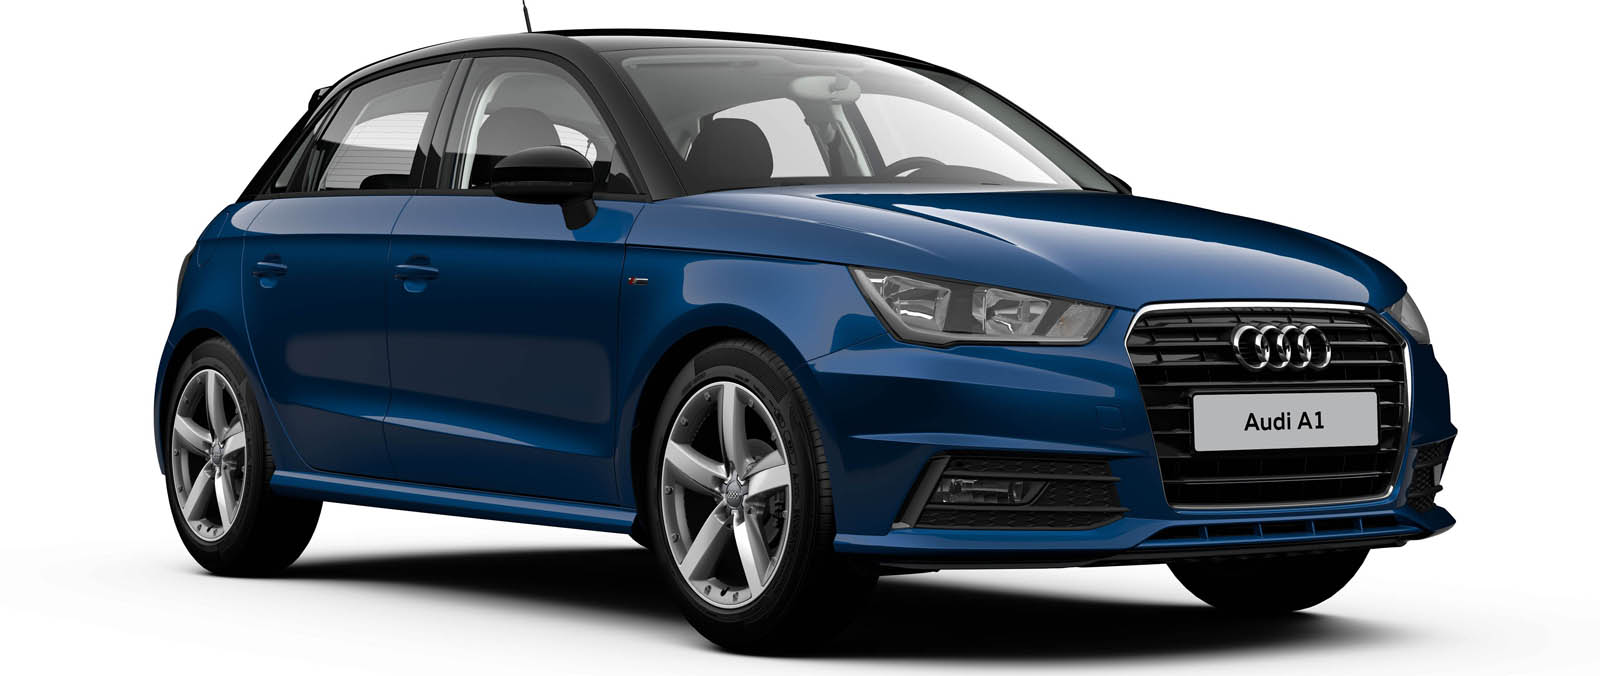 Audi introduceert A1 Adrenalin